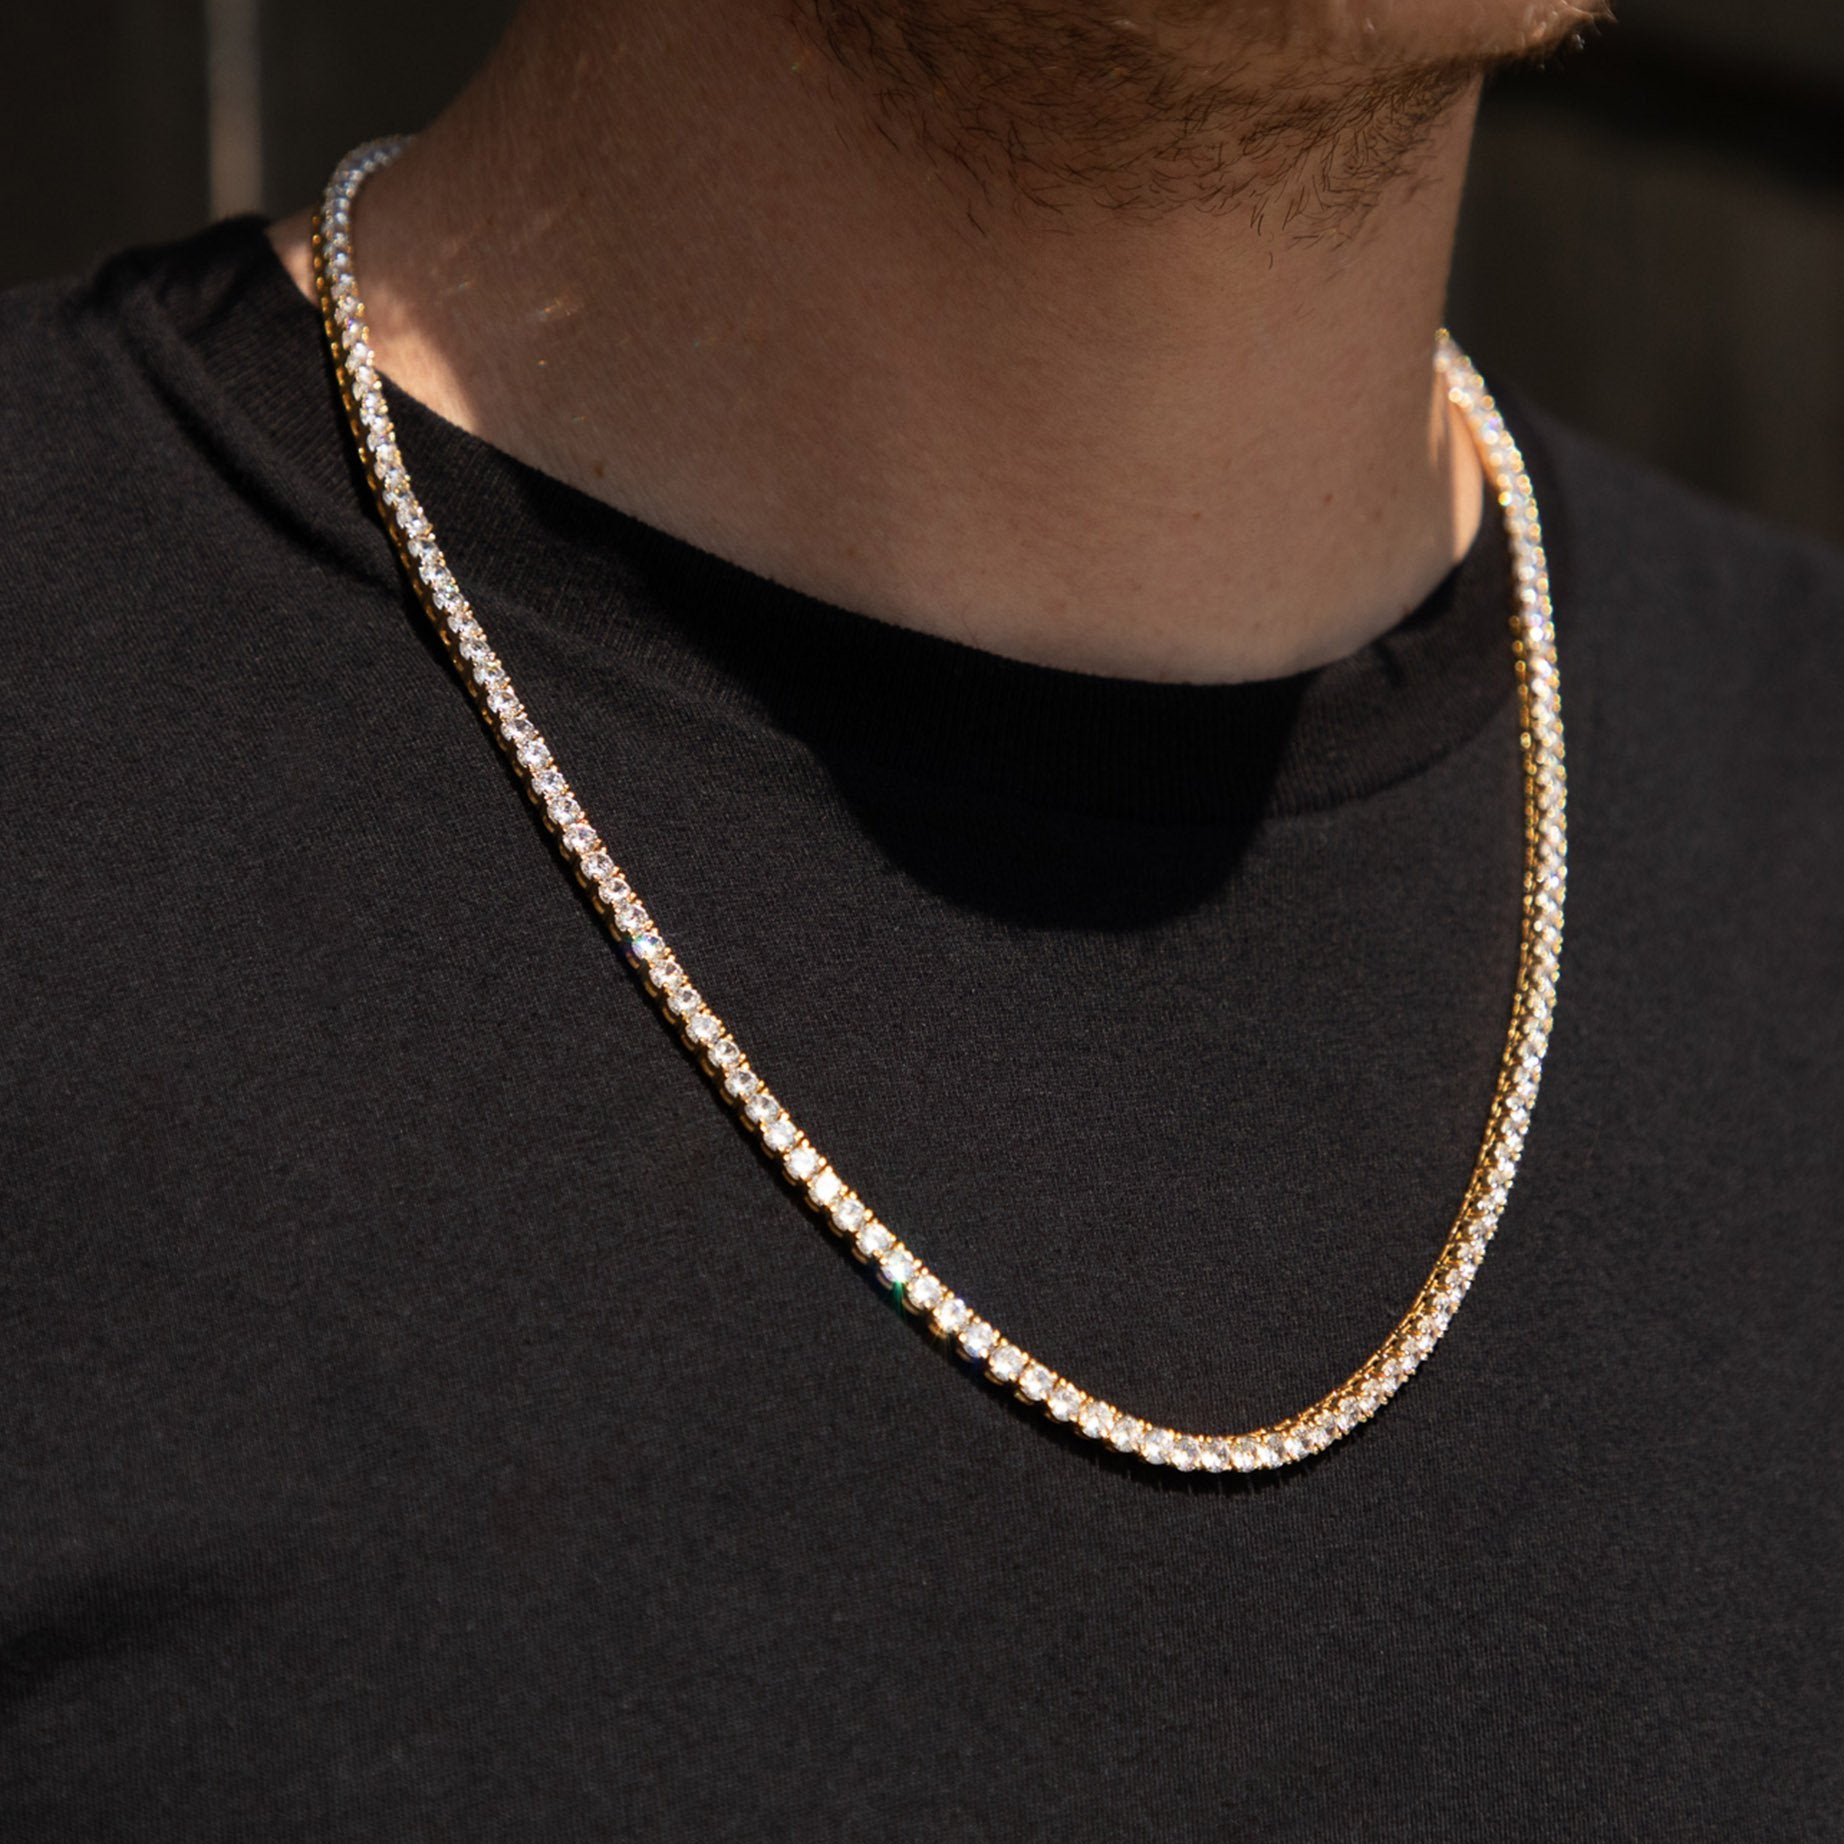 Gold Diamond Tennis Chain - Got Drip - Jewelry - Ice - Jake Paul